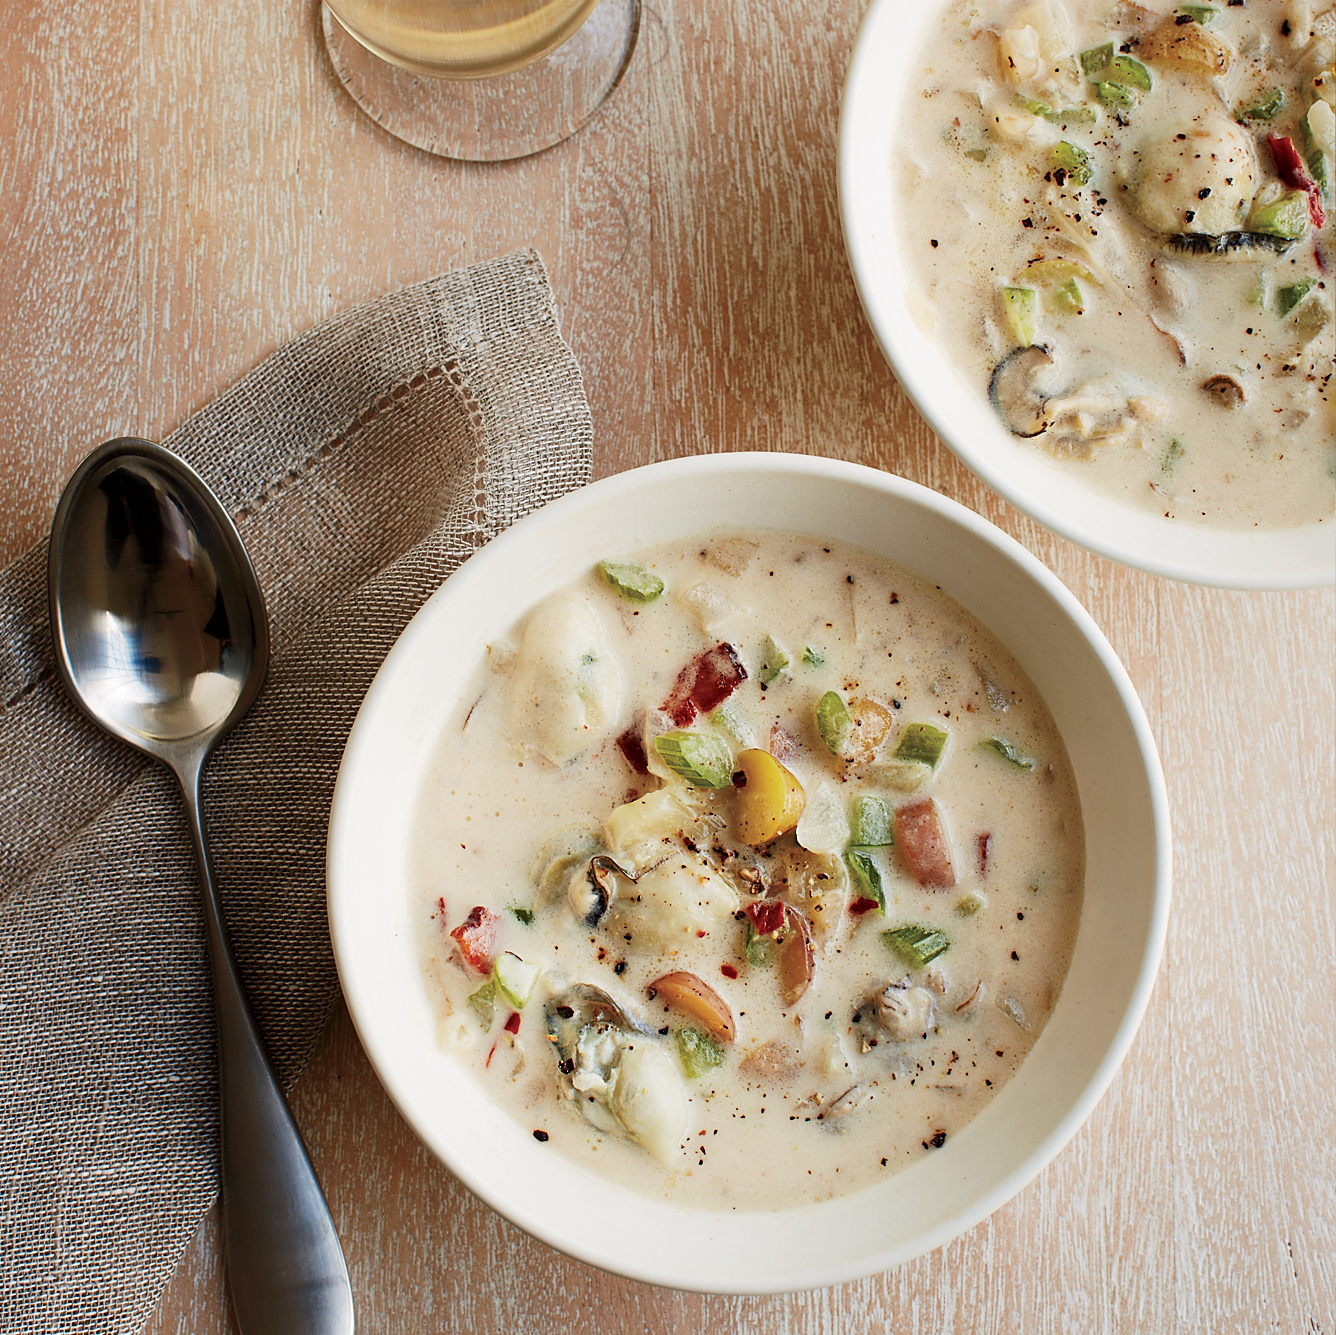 Smoky Oyster Chowder with Bacon, Rosemary and Fennel